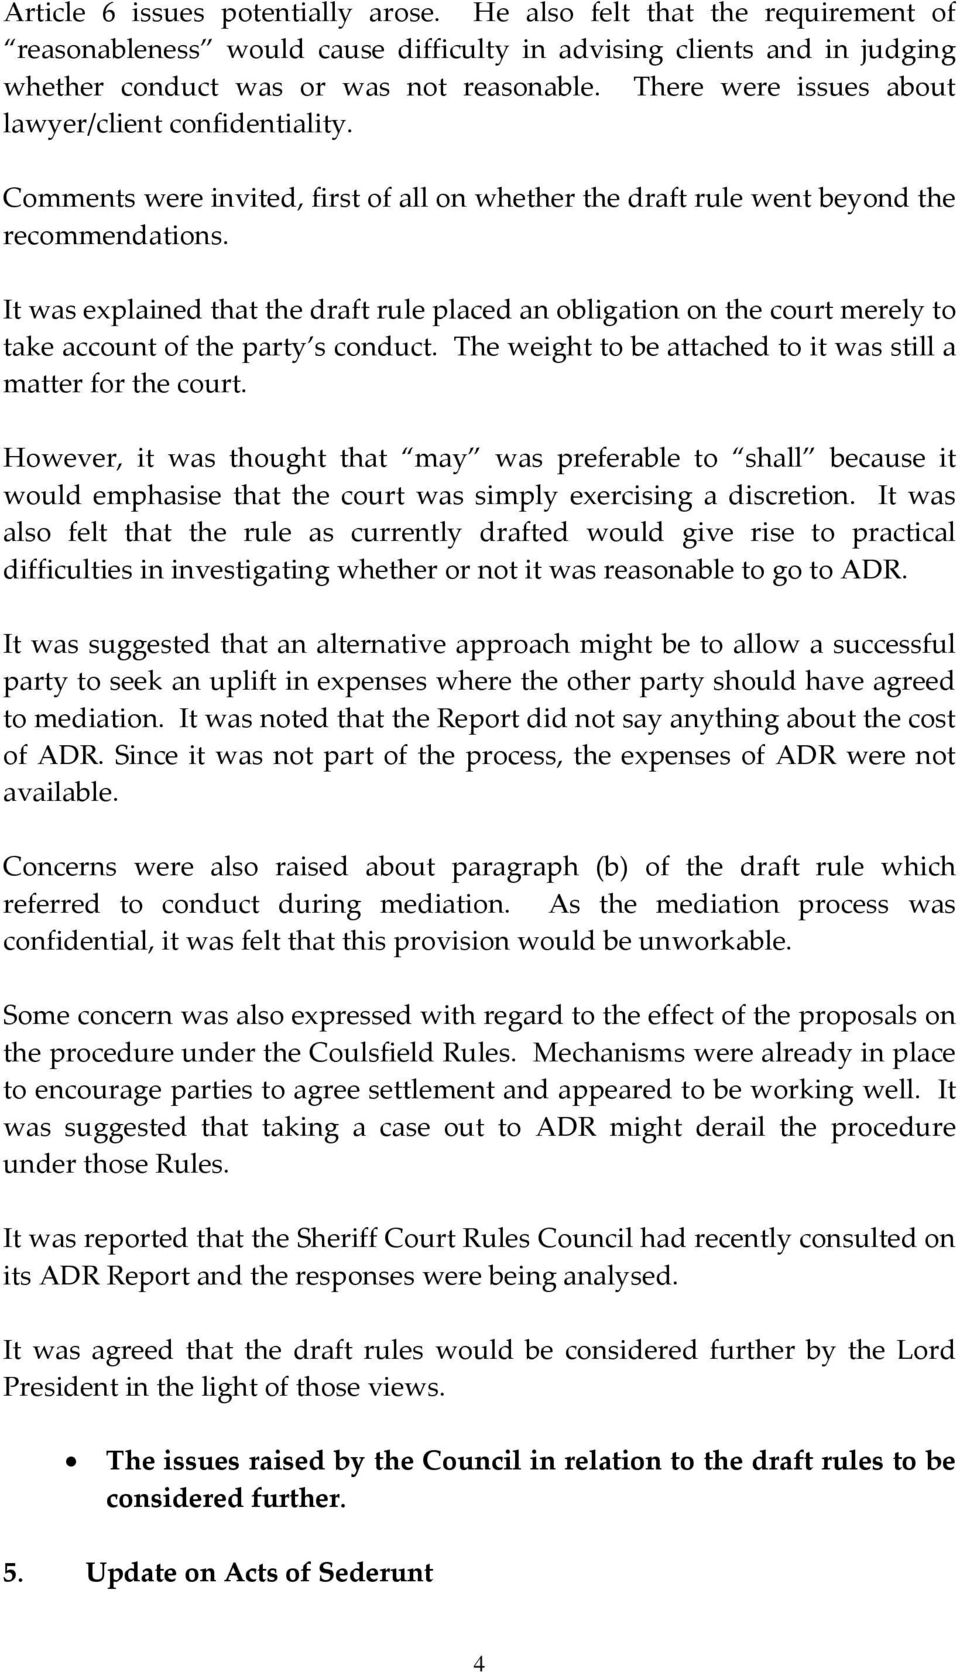 It was explained that the draft rule placed an obligation on the court merely to take account of the party s conduct. The weight to be attached to it was still a matter for the court.